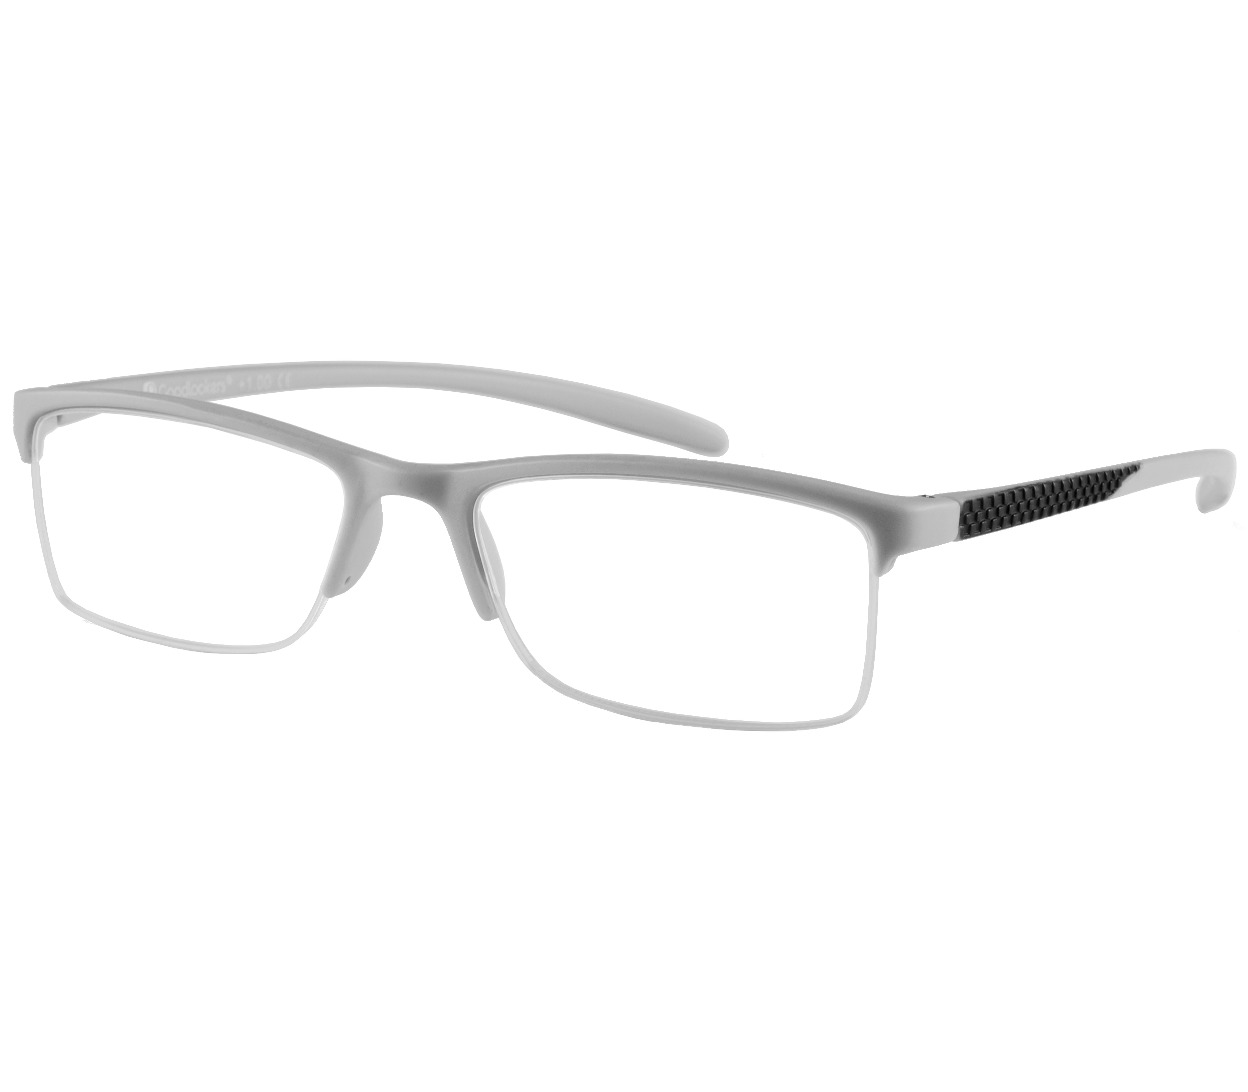 Main Image (Angle) - Parliament (Grey) Semi-rimless Reading Glasses